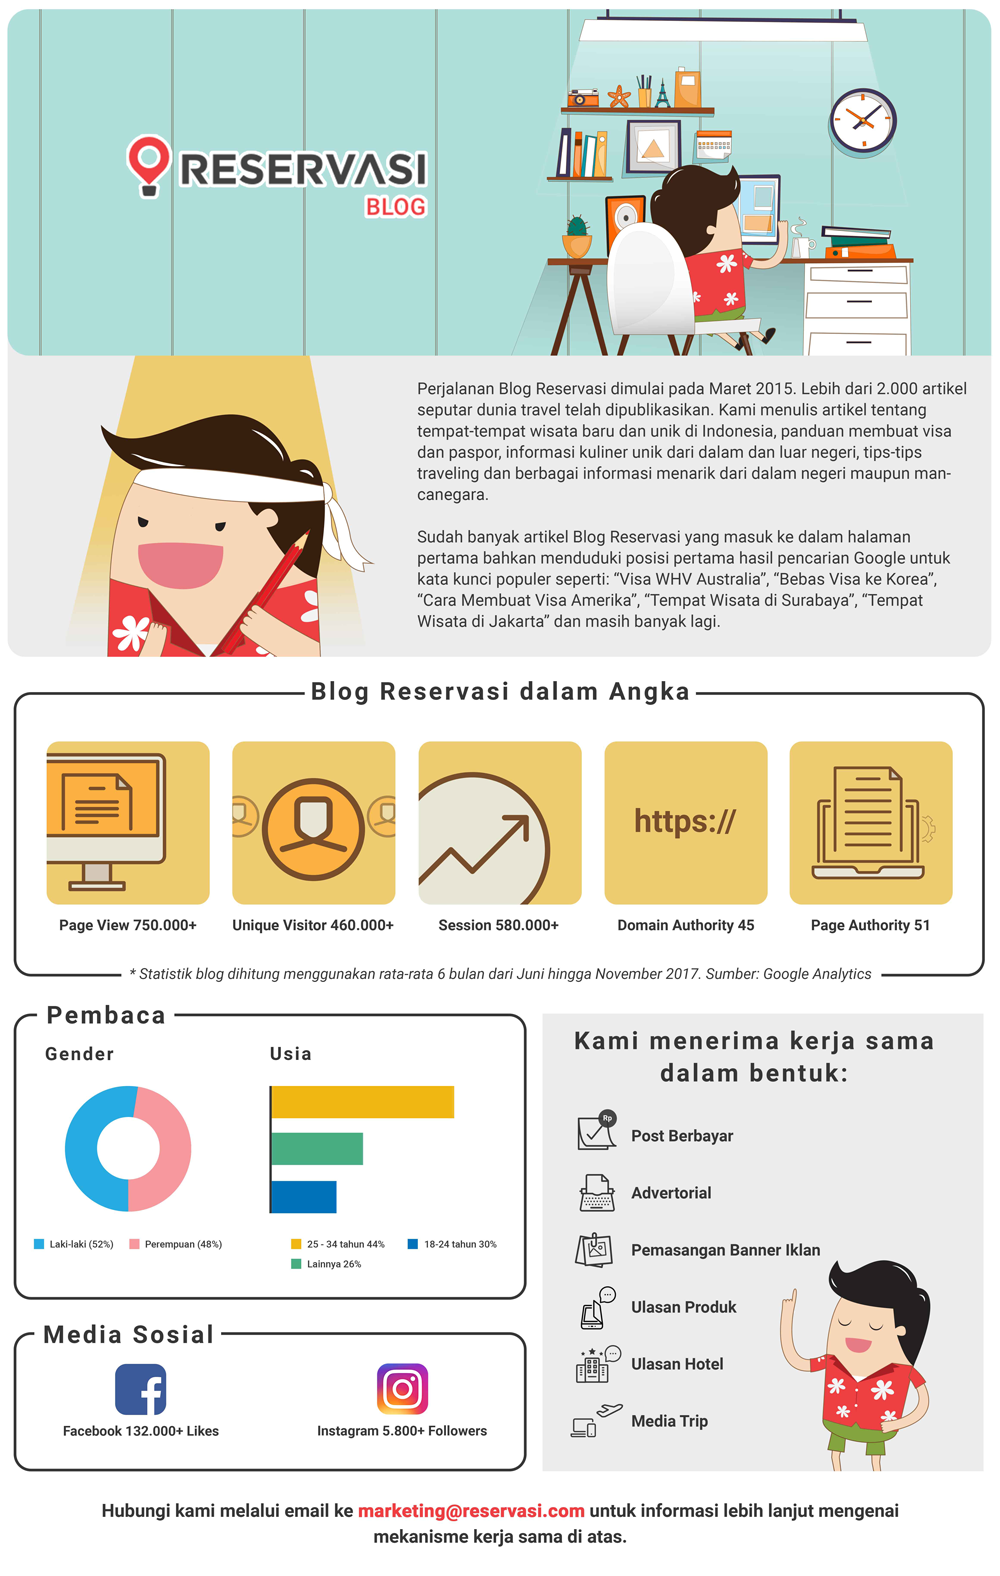 Media Kit Kerjamsama dengan Travel Blog Reservasi